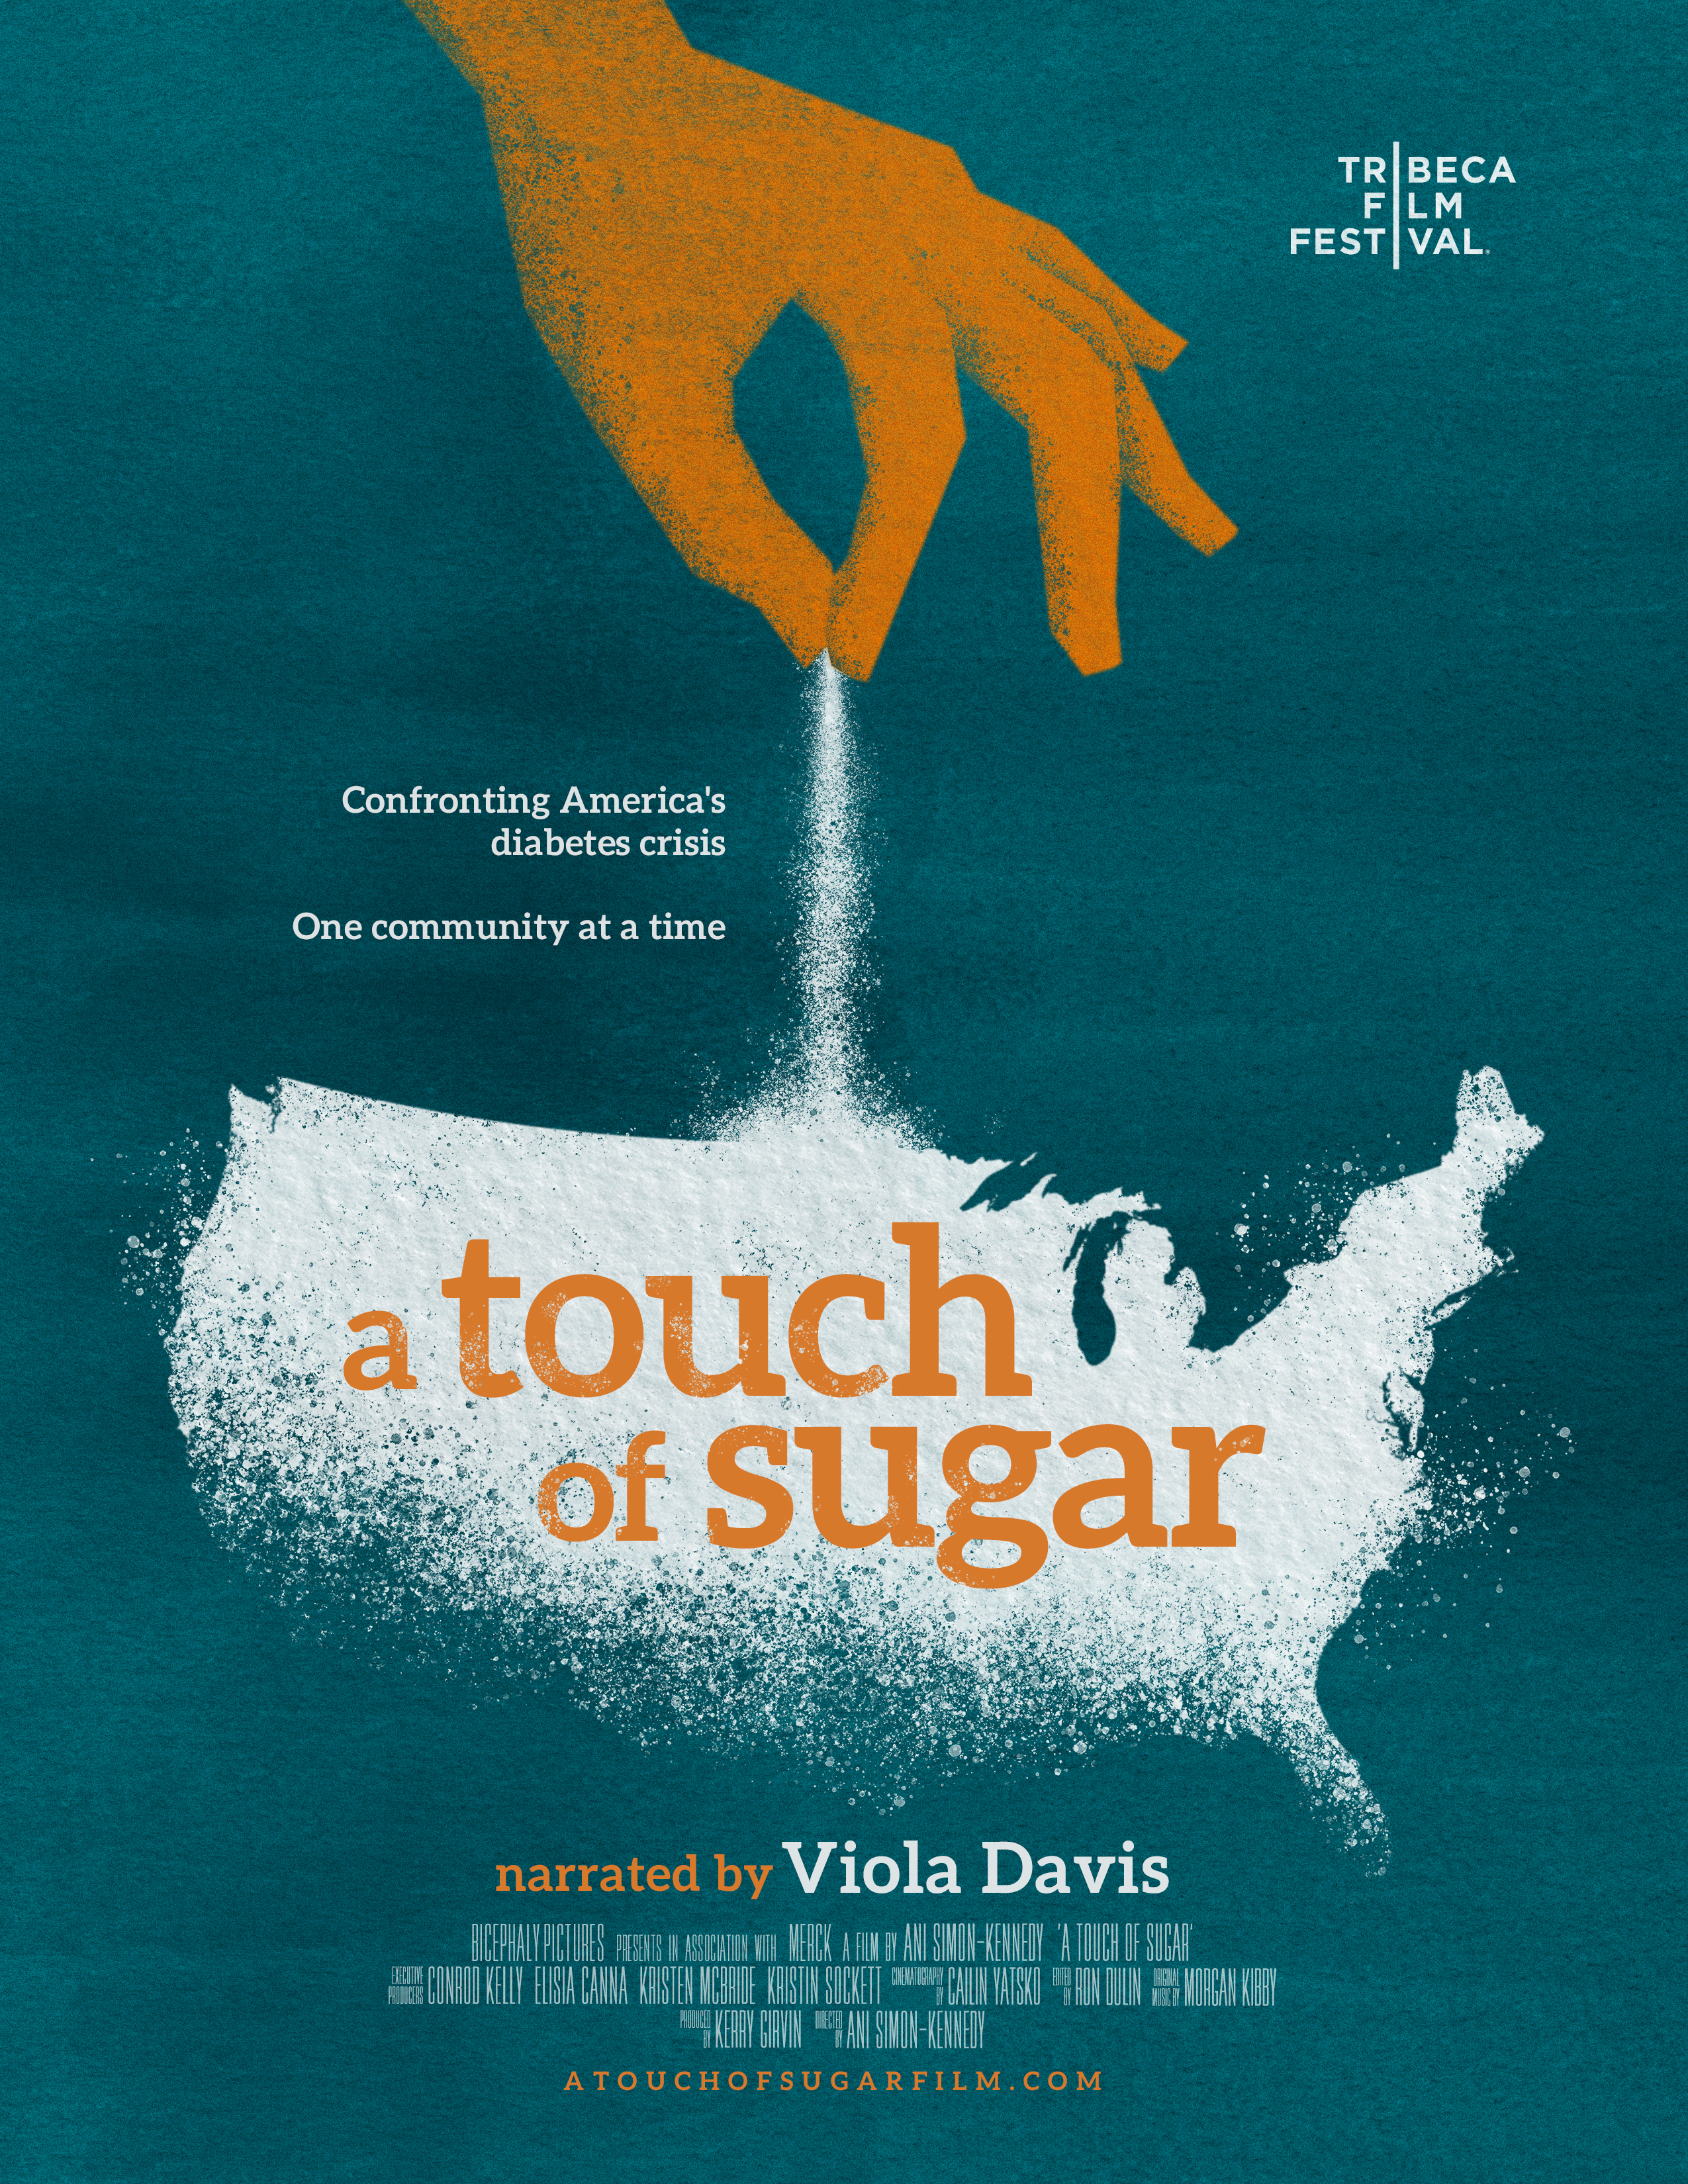 Watch the Film: A Touch of Sugar